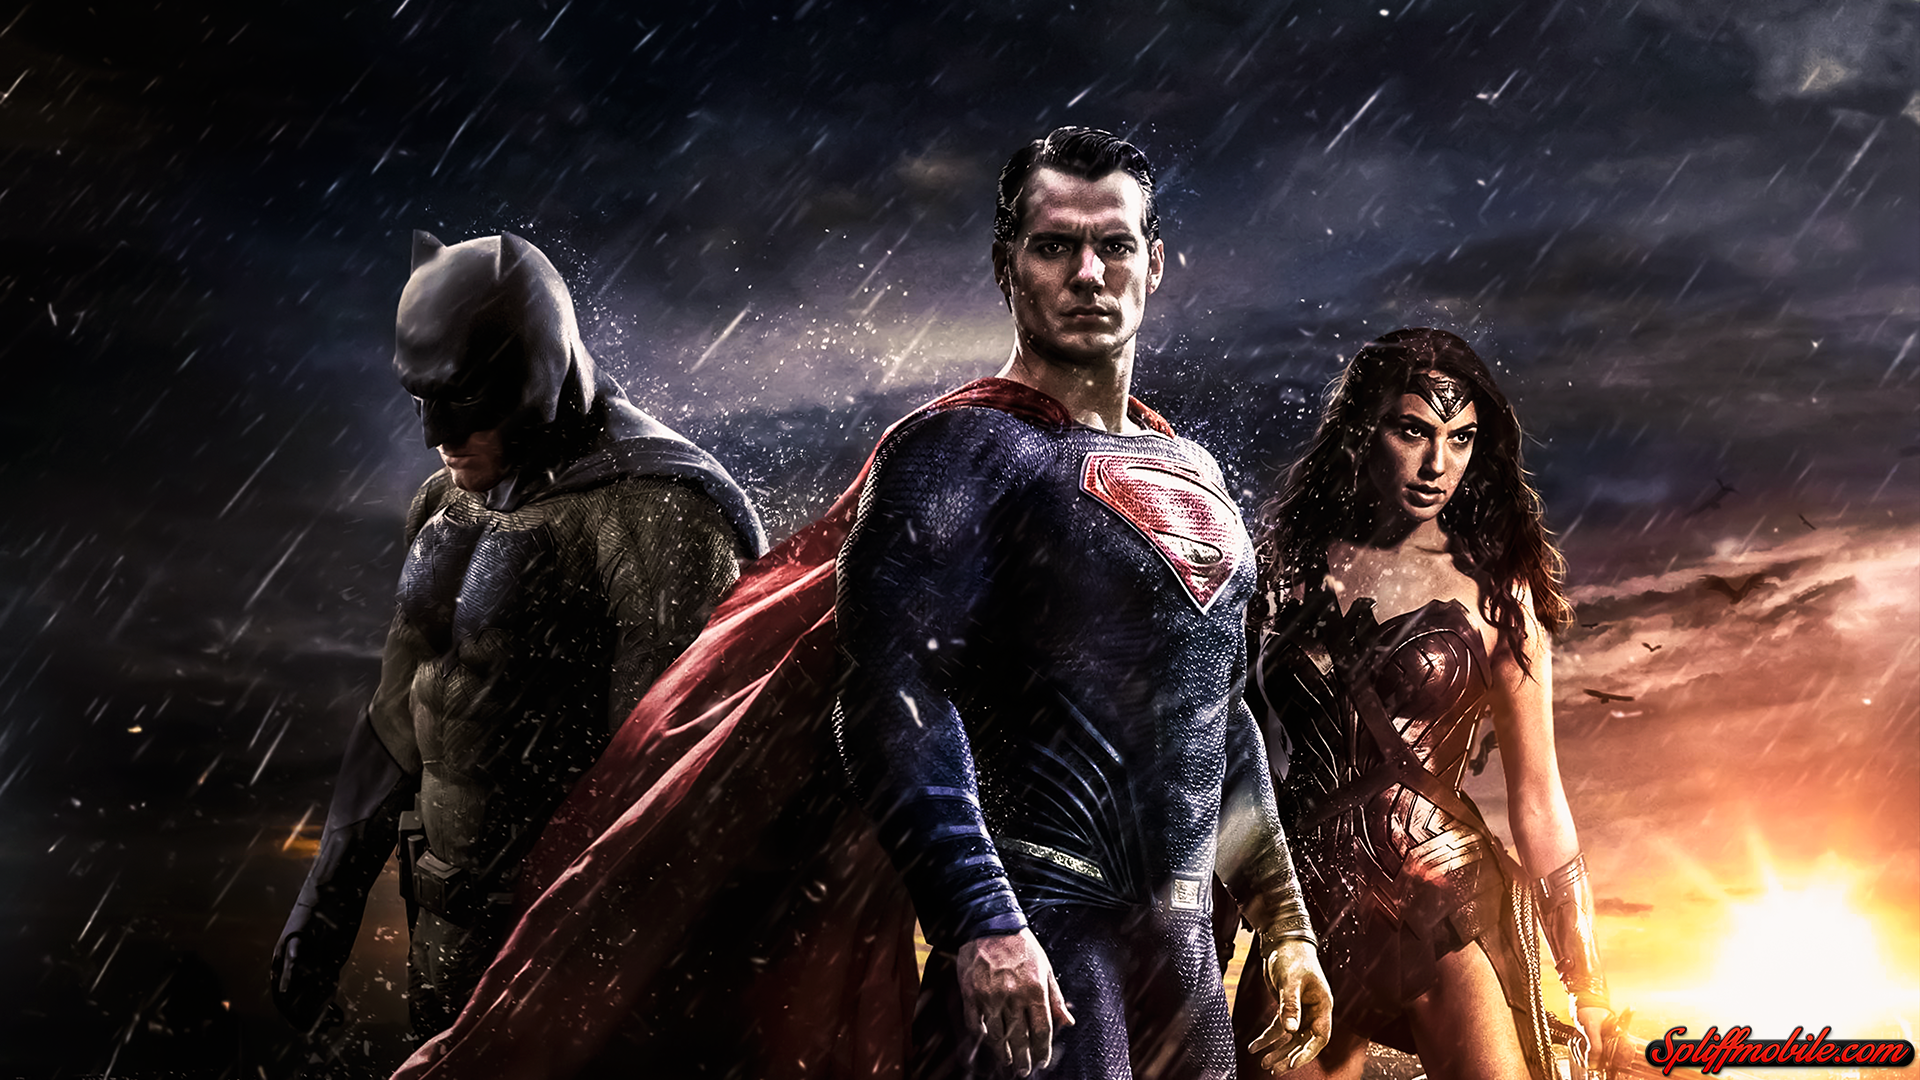 HD Batman vs Superman Wallpaper 1920x1080